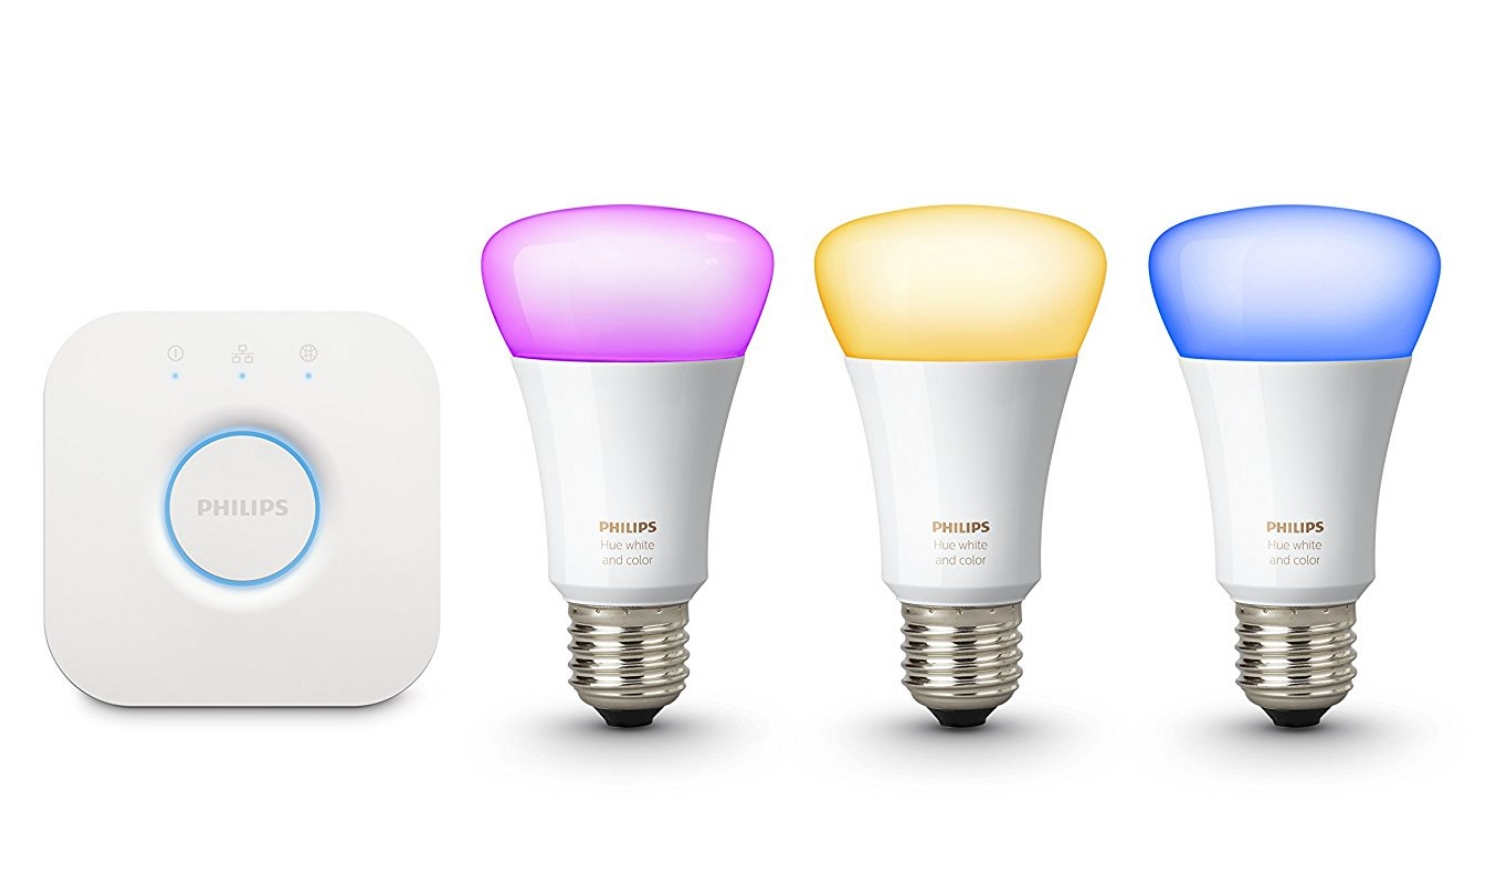 Hue G10 The Best Philips Hue Starter Kit Deals 2019 T3